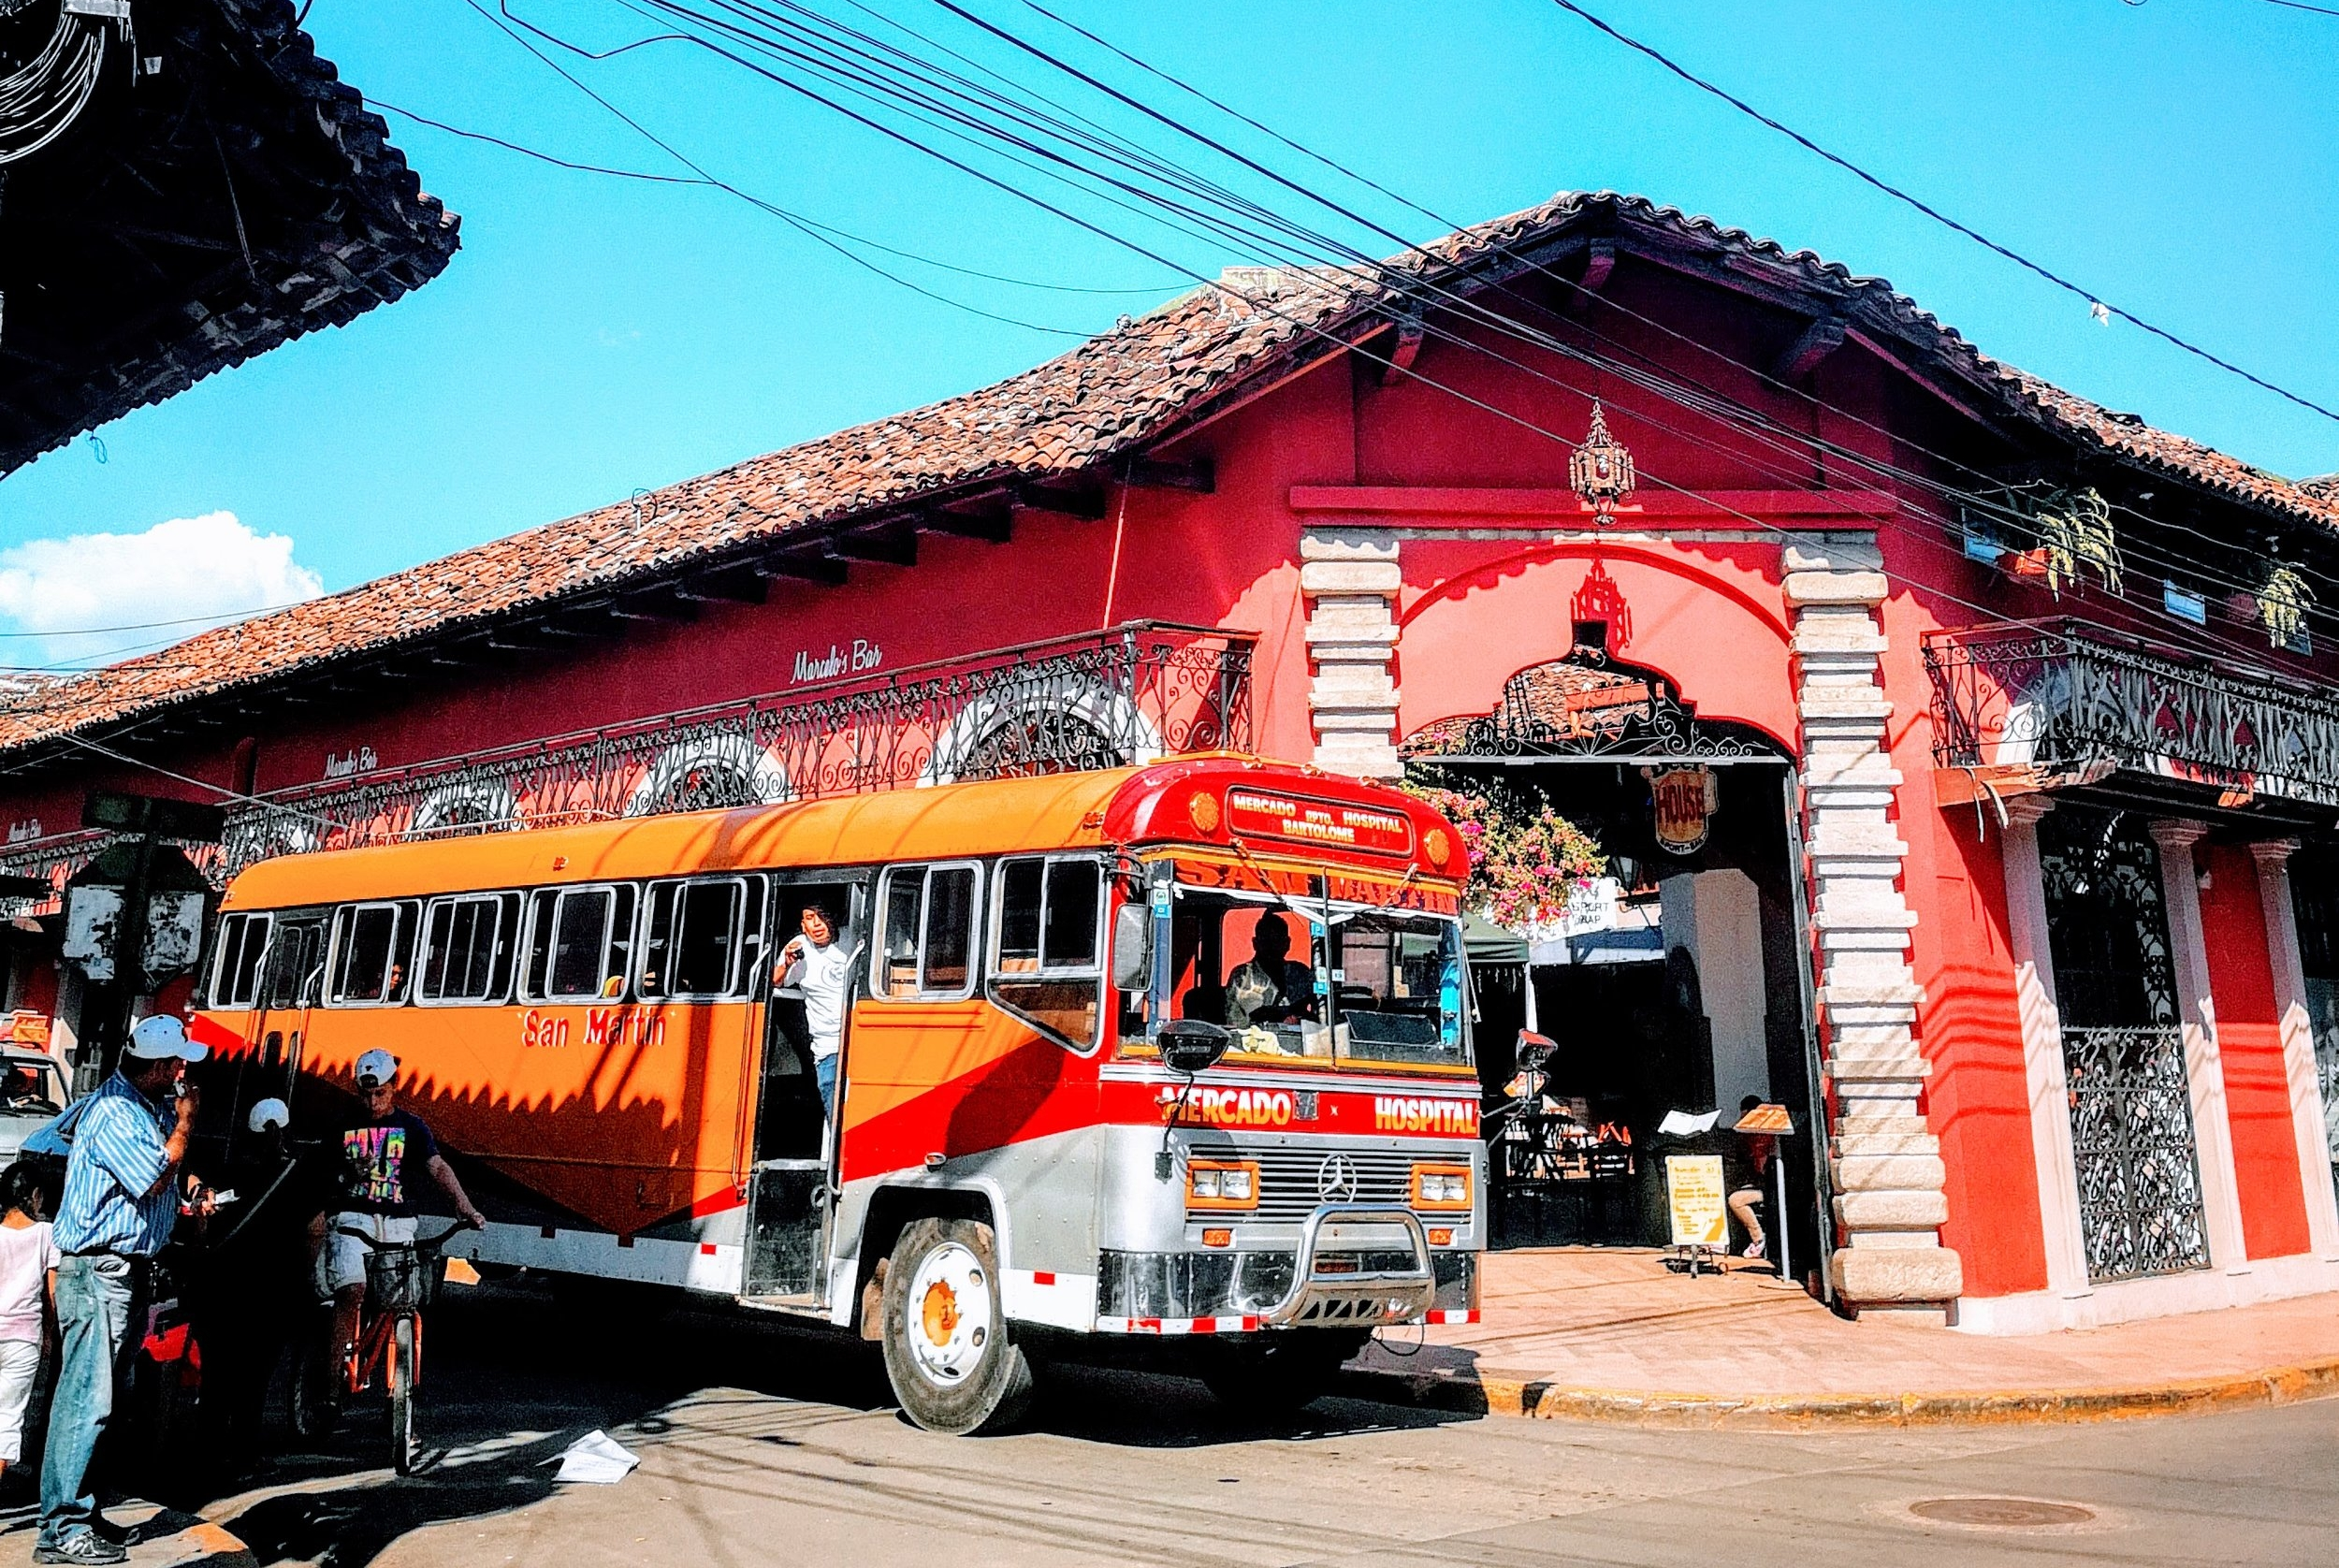 Take the Chicken Bus - Popular with locals and tourists, these colorfully decorated buses transport goods and people acoss Latin American countries.